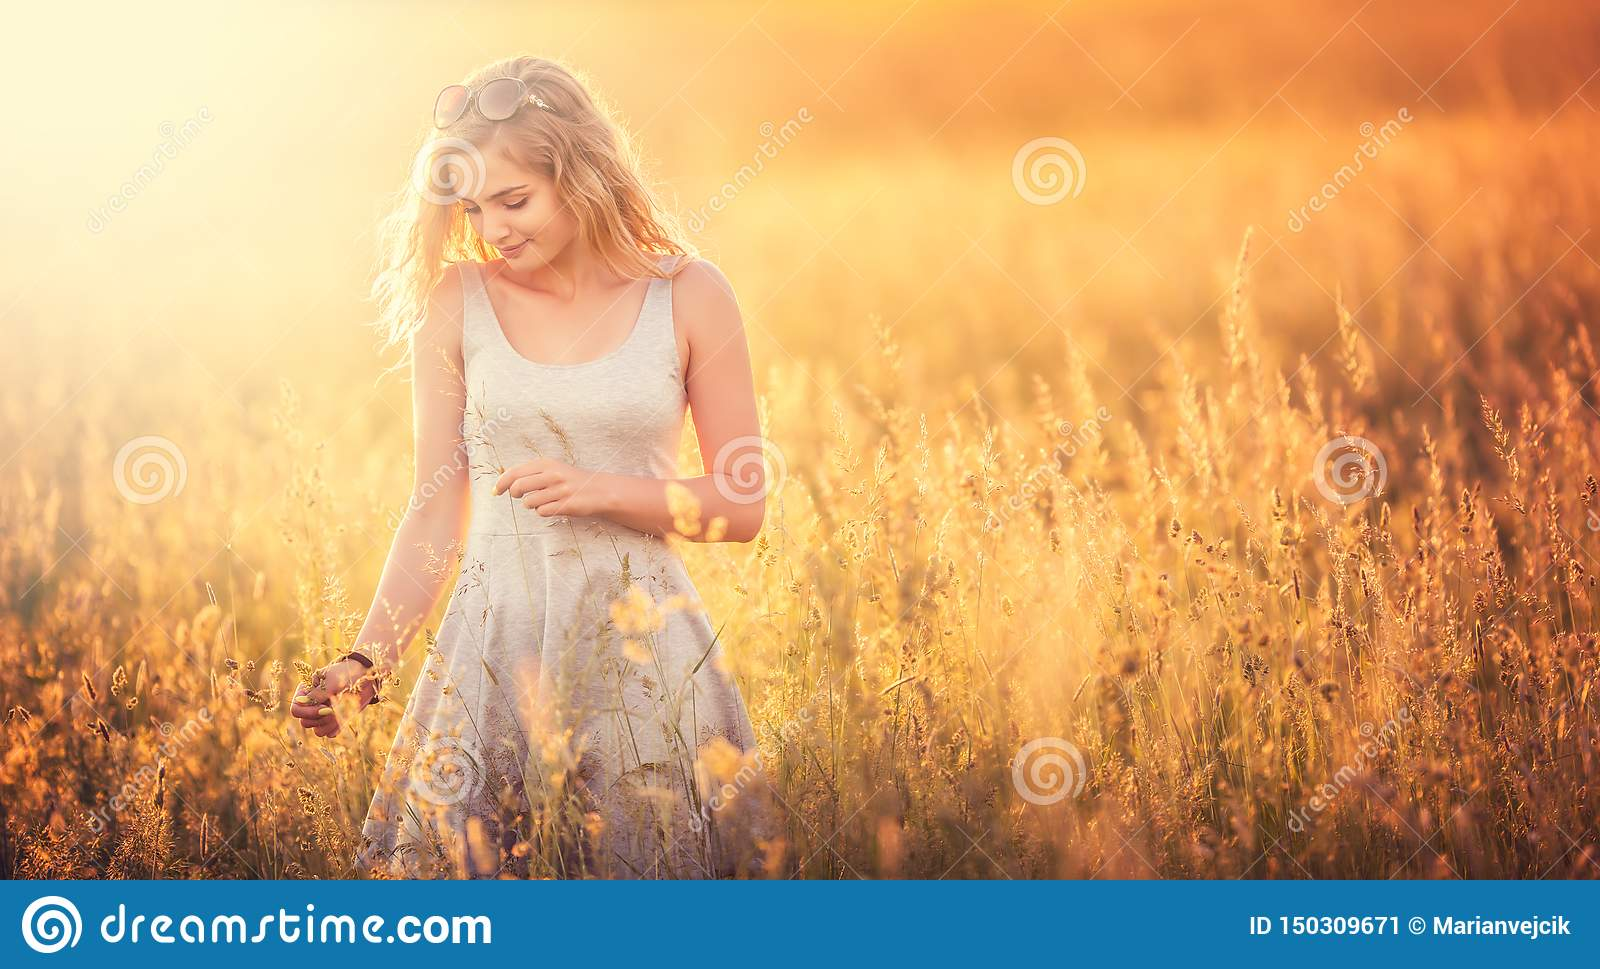 Beautiful tender blonde young girl standing at summer meadow in gray sundress. Free happy woman enjoying nature